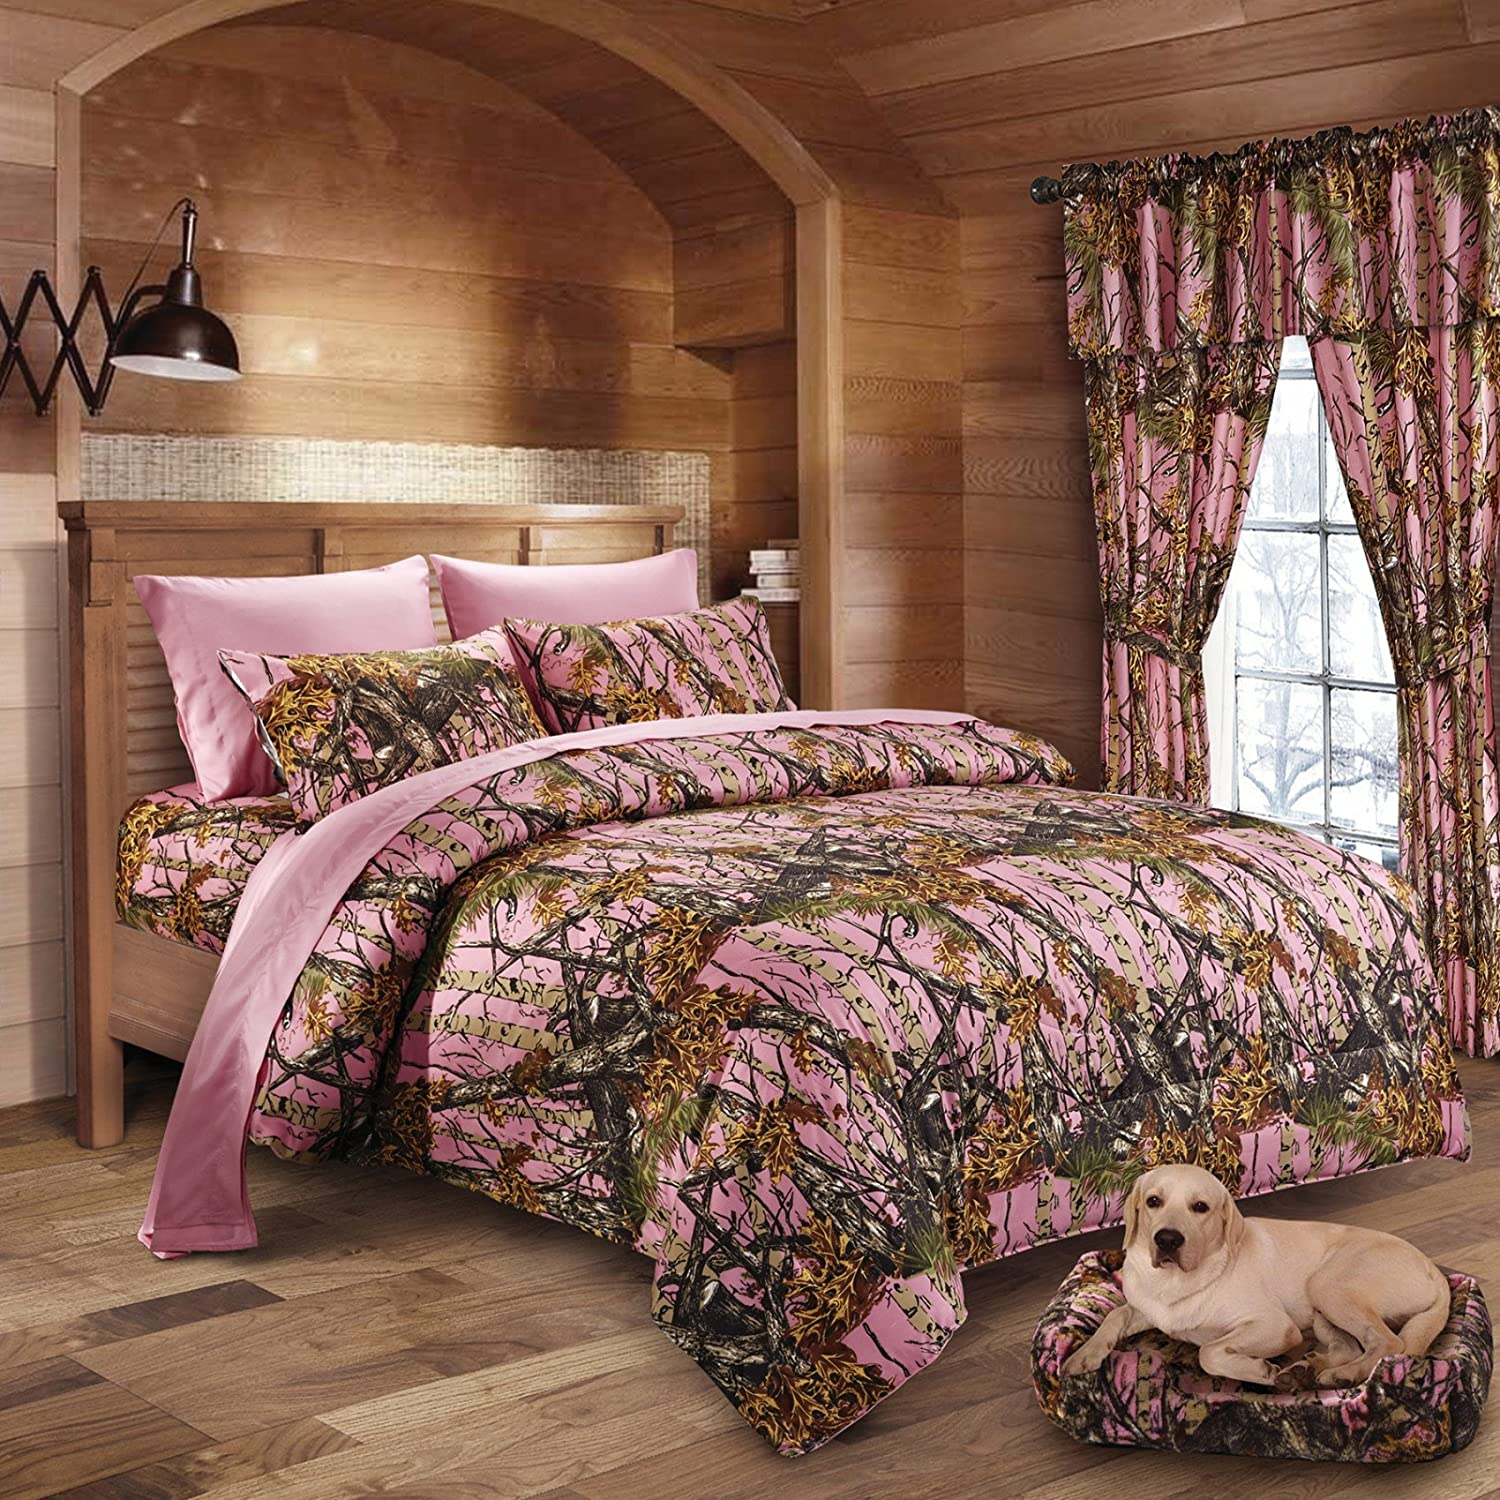 Amazon.com: 20 Lakes Woodland Hunter Camo Comforter, Sheet, U0026 Pillowcase  Set (Queen, Pink): Home U0026 Kitchen